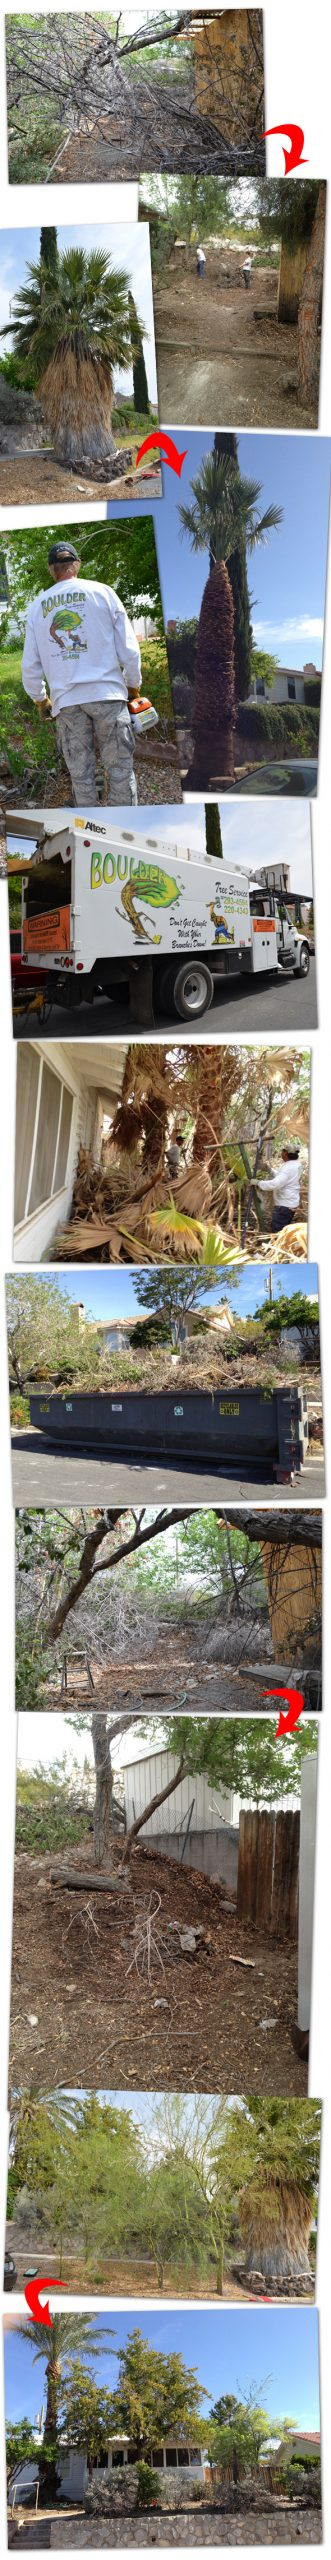 Yard Cleanup 2013 in Boulder City, Nevada